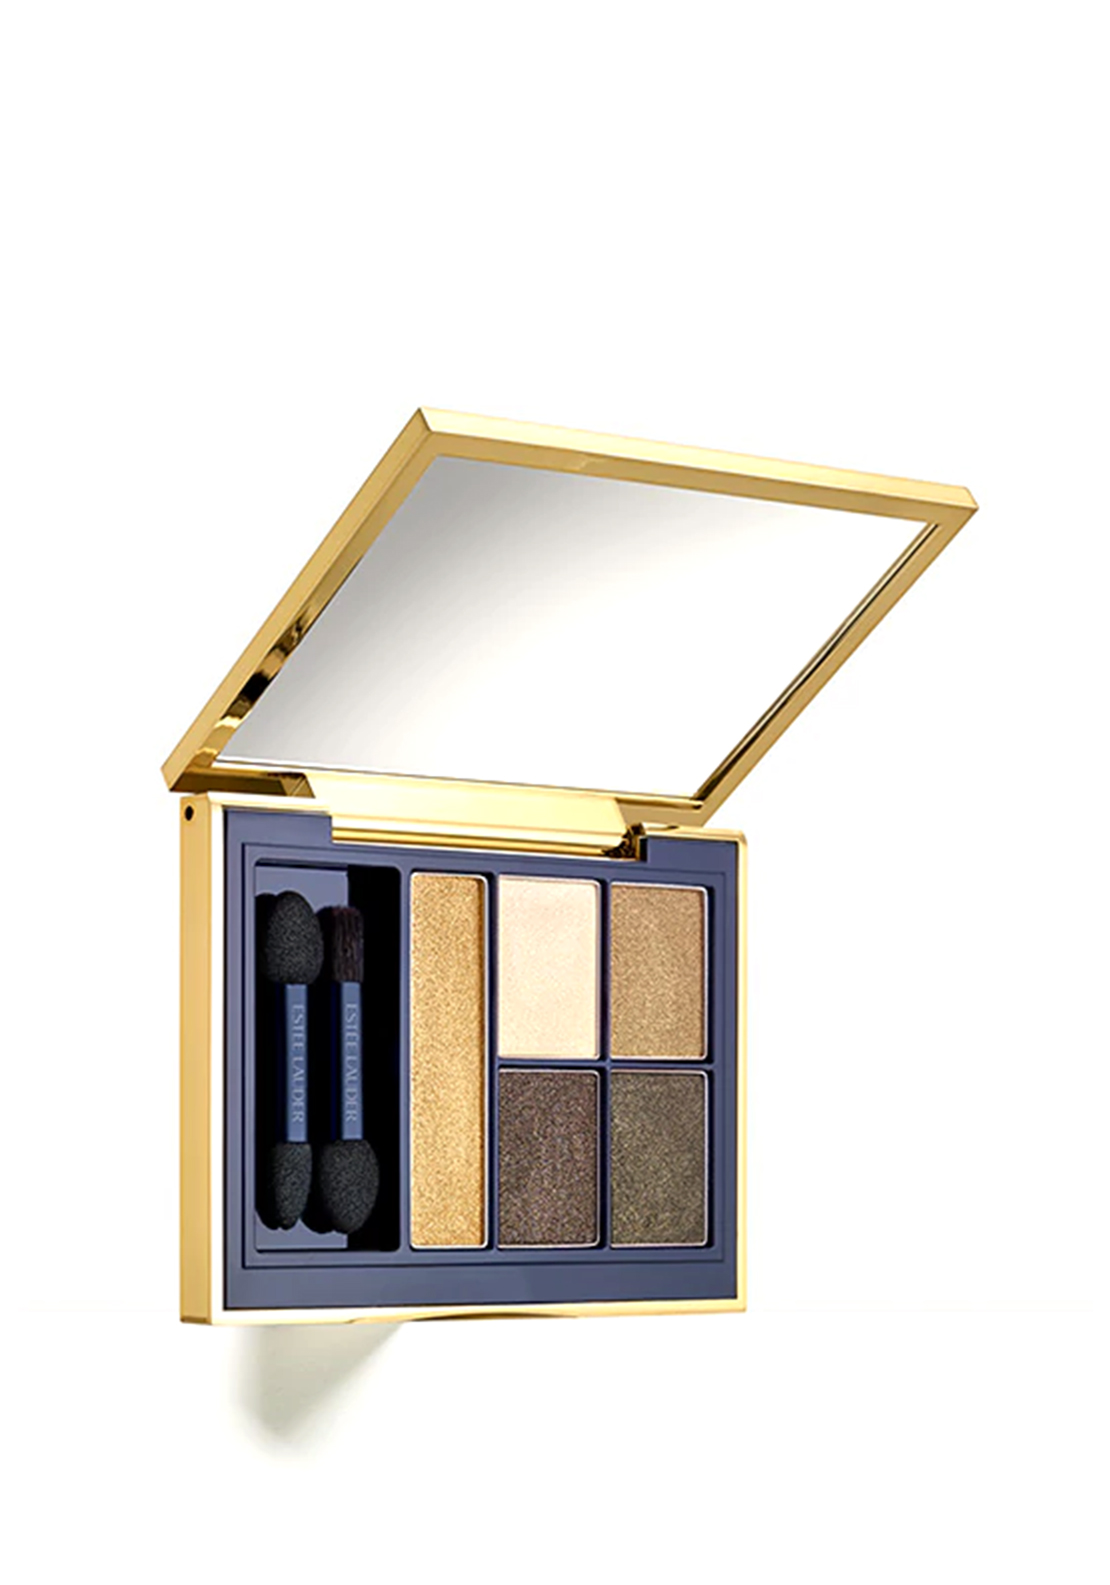 Estee Lauder Pure Colour Envy Eyeshadow Palette, Fierce Safari